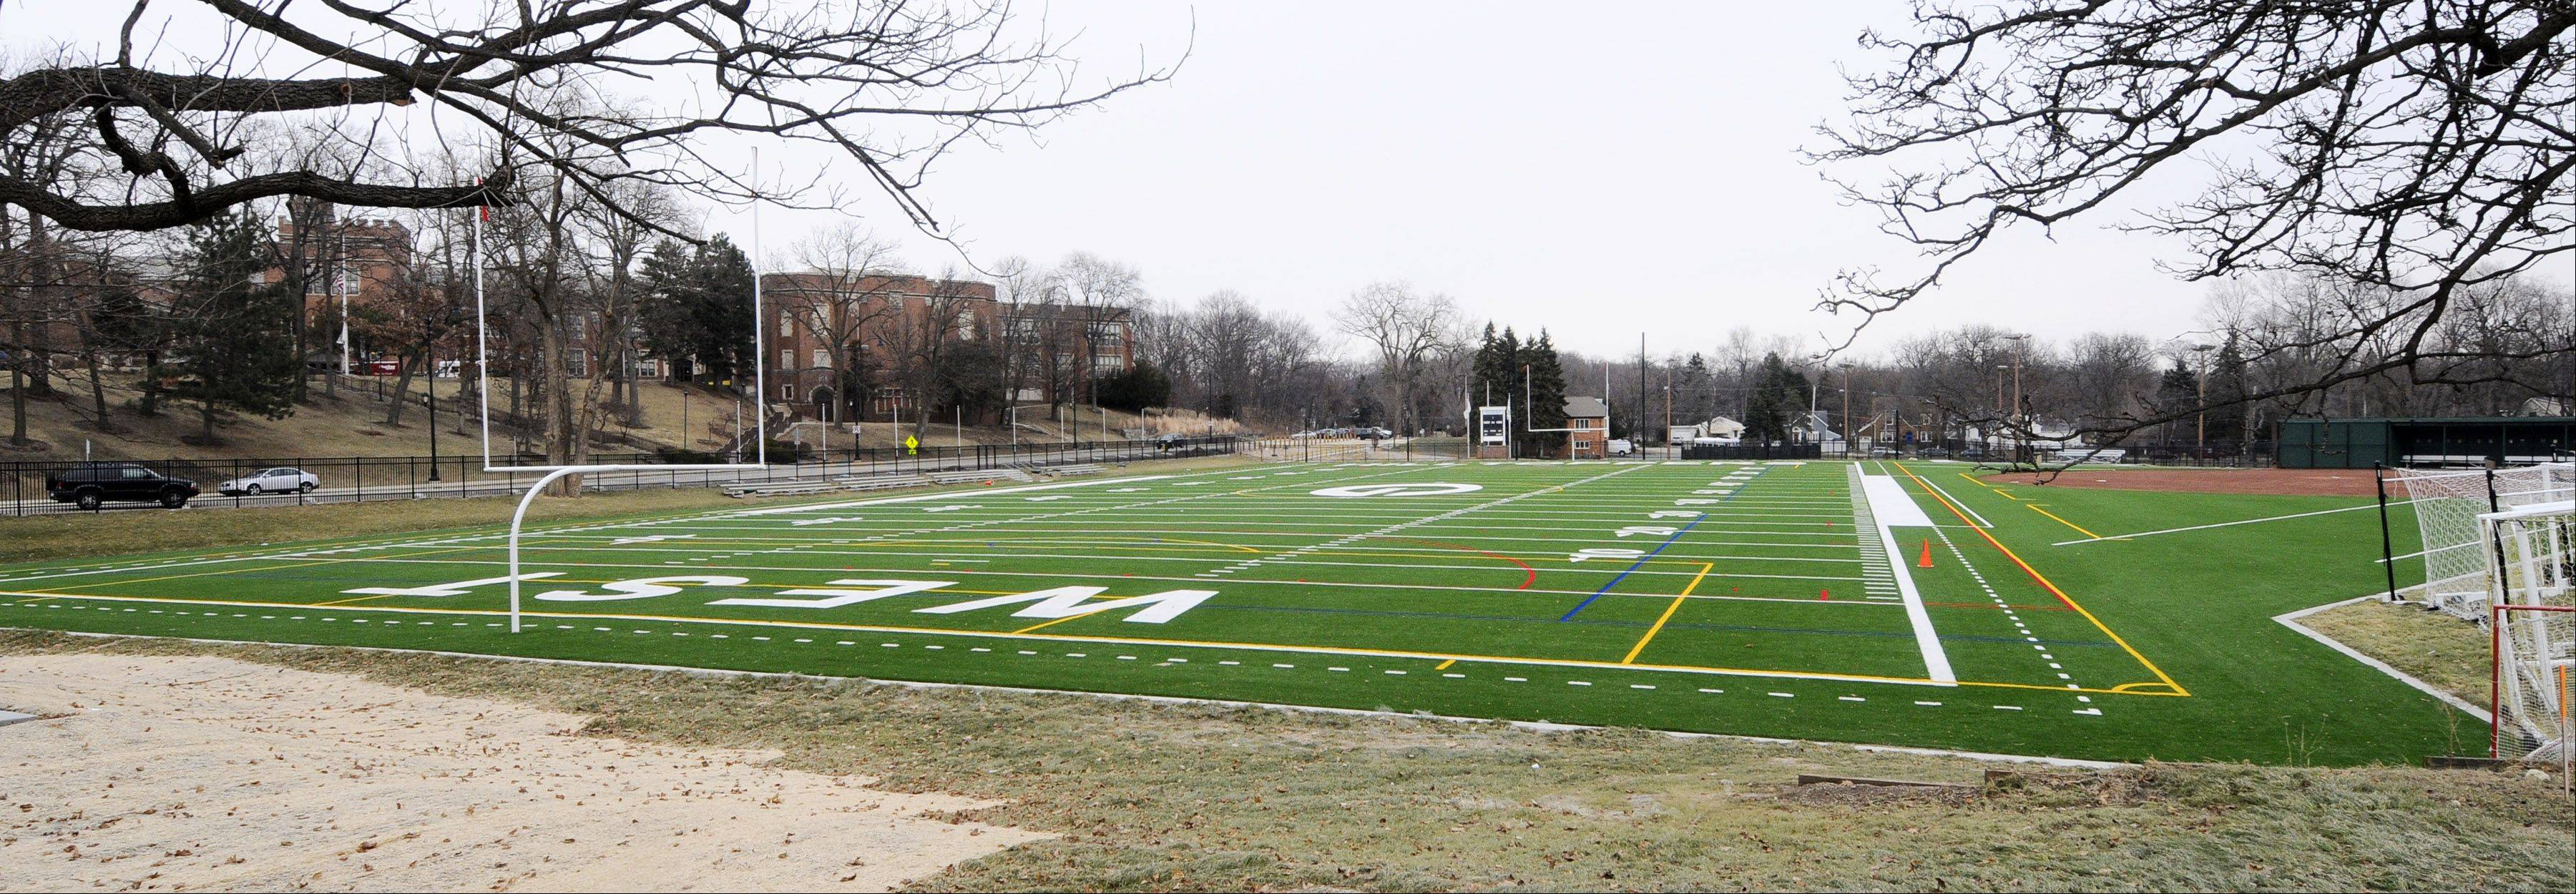 The Glen Ellyn plan commission met for the ninth time Thursday night to discuss variance requests for lights at Memorial Field.